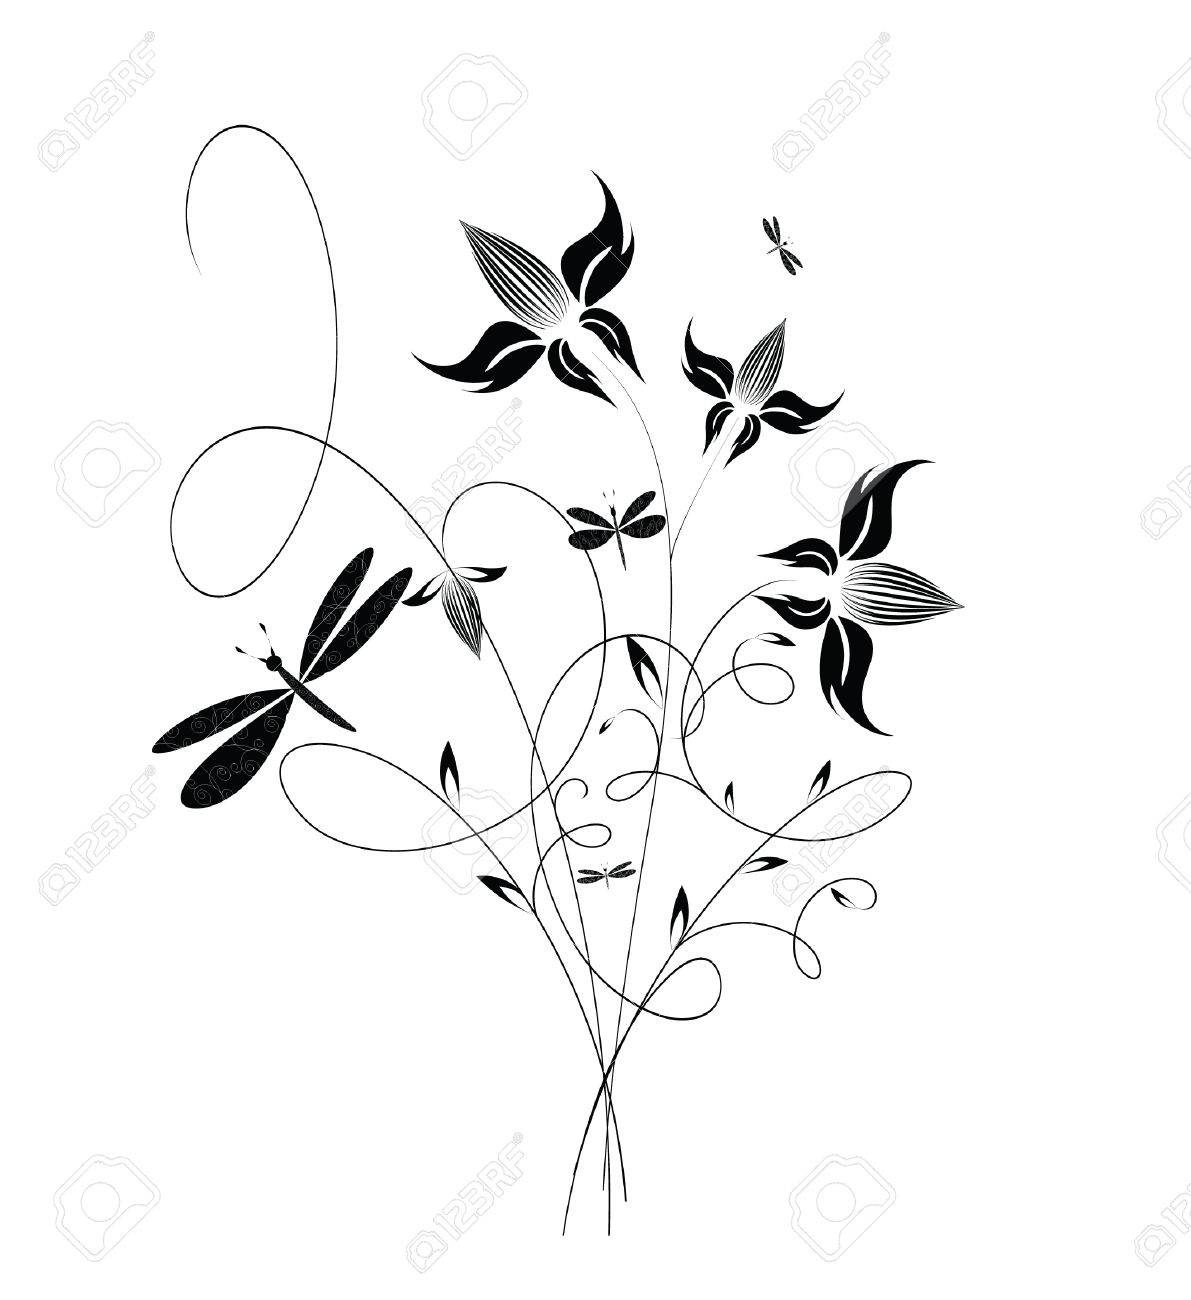 decorative flowers isolated on white background vector illustration please see some similar pictures - Decorative Flowers